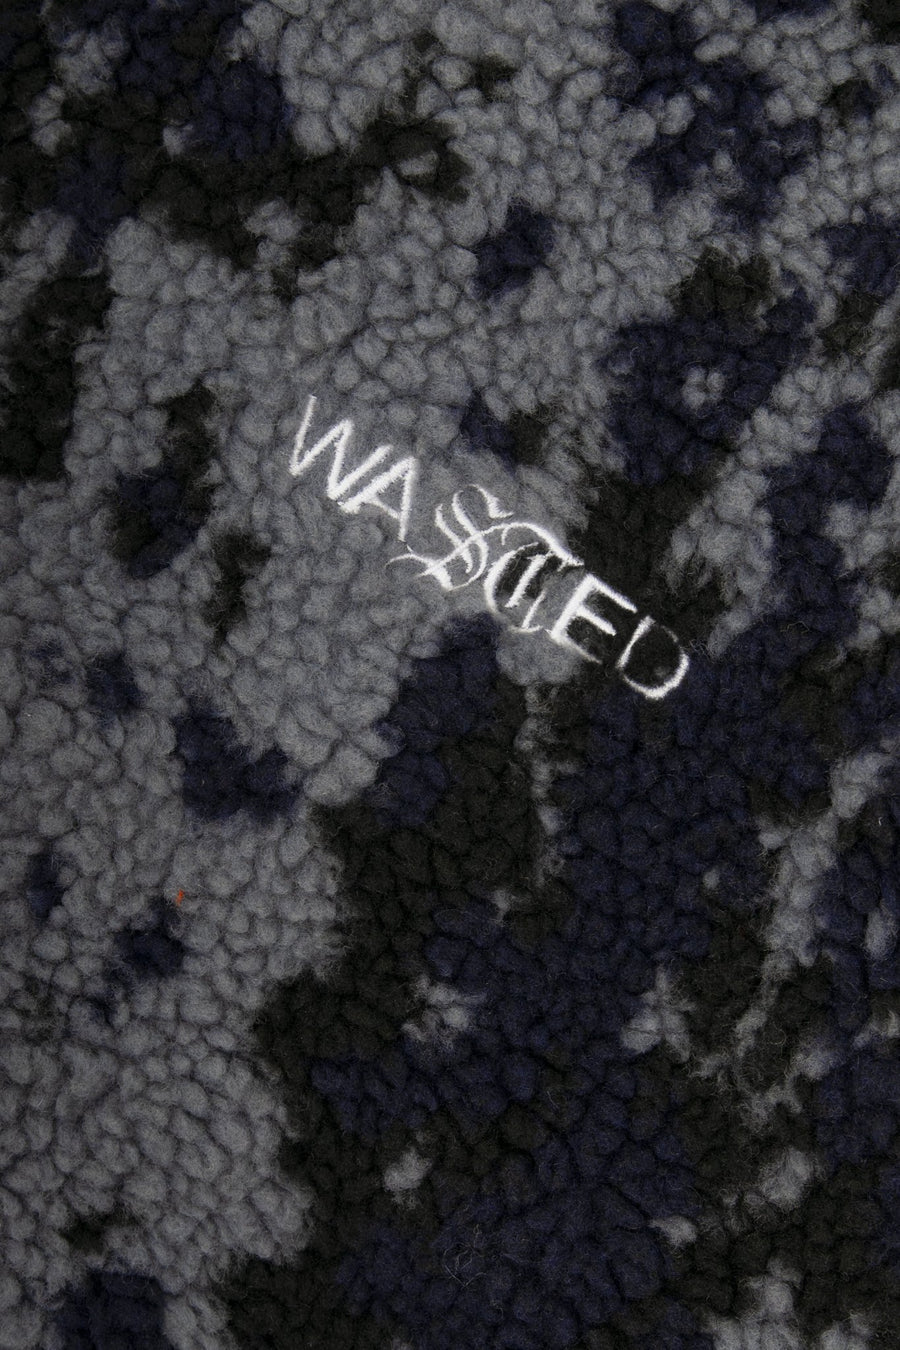 Veste Sherpa Abstract Camo Noir - WASTED PARIS